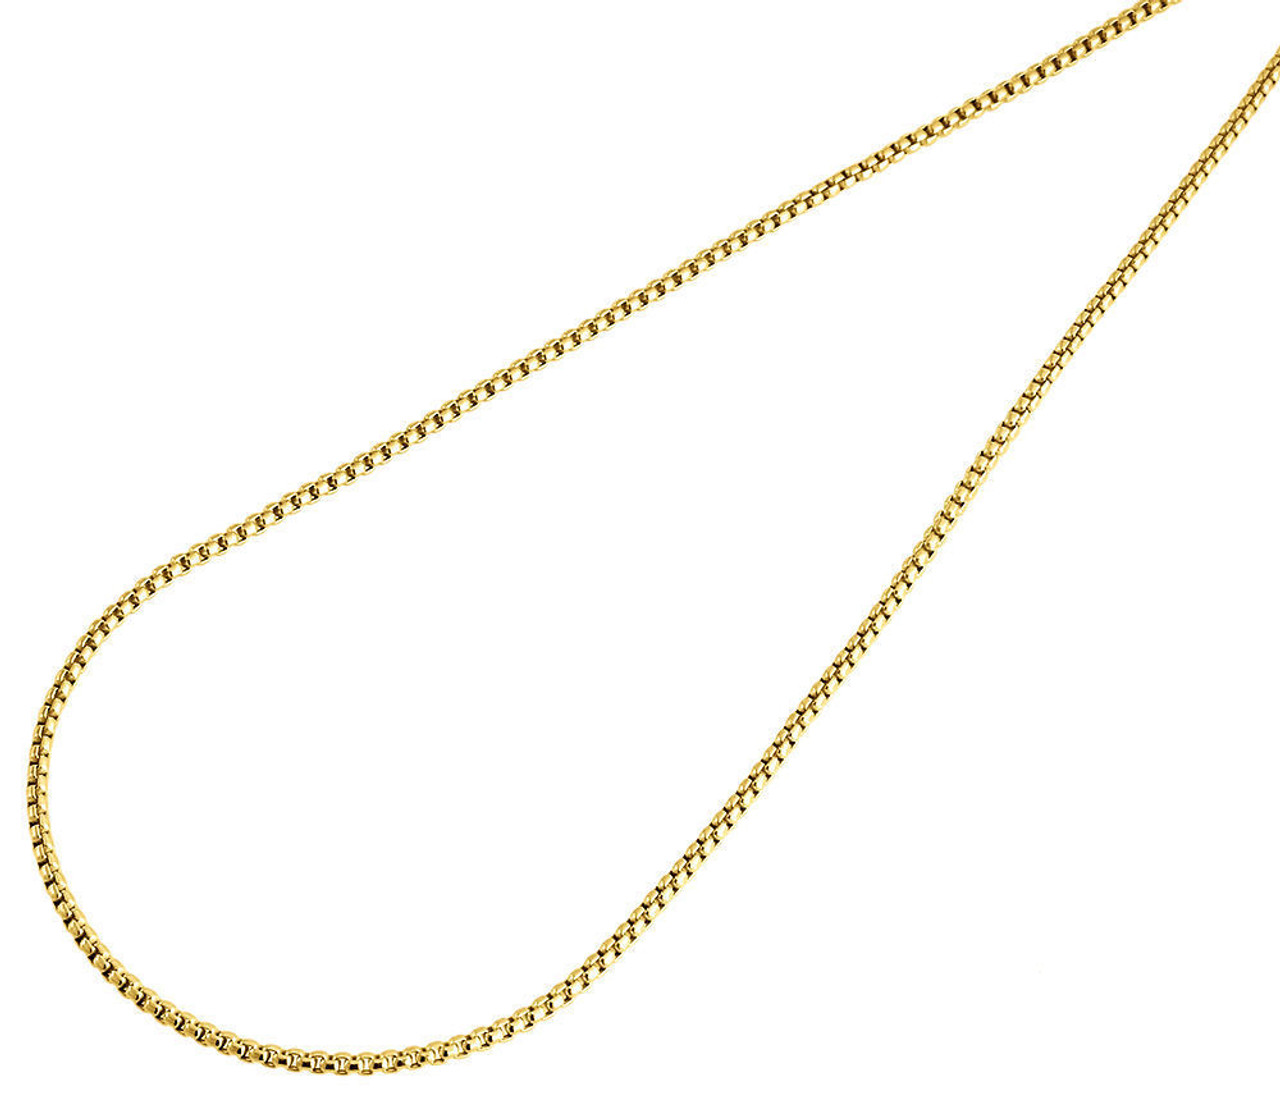 Real 10k yellow white and Rose gold  chain necklace 1.5 mm 18 inches long